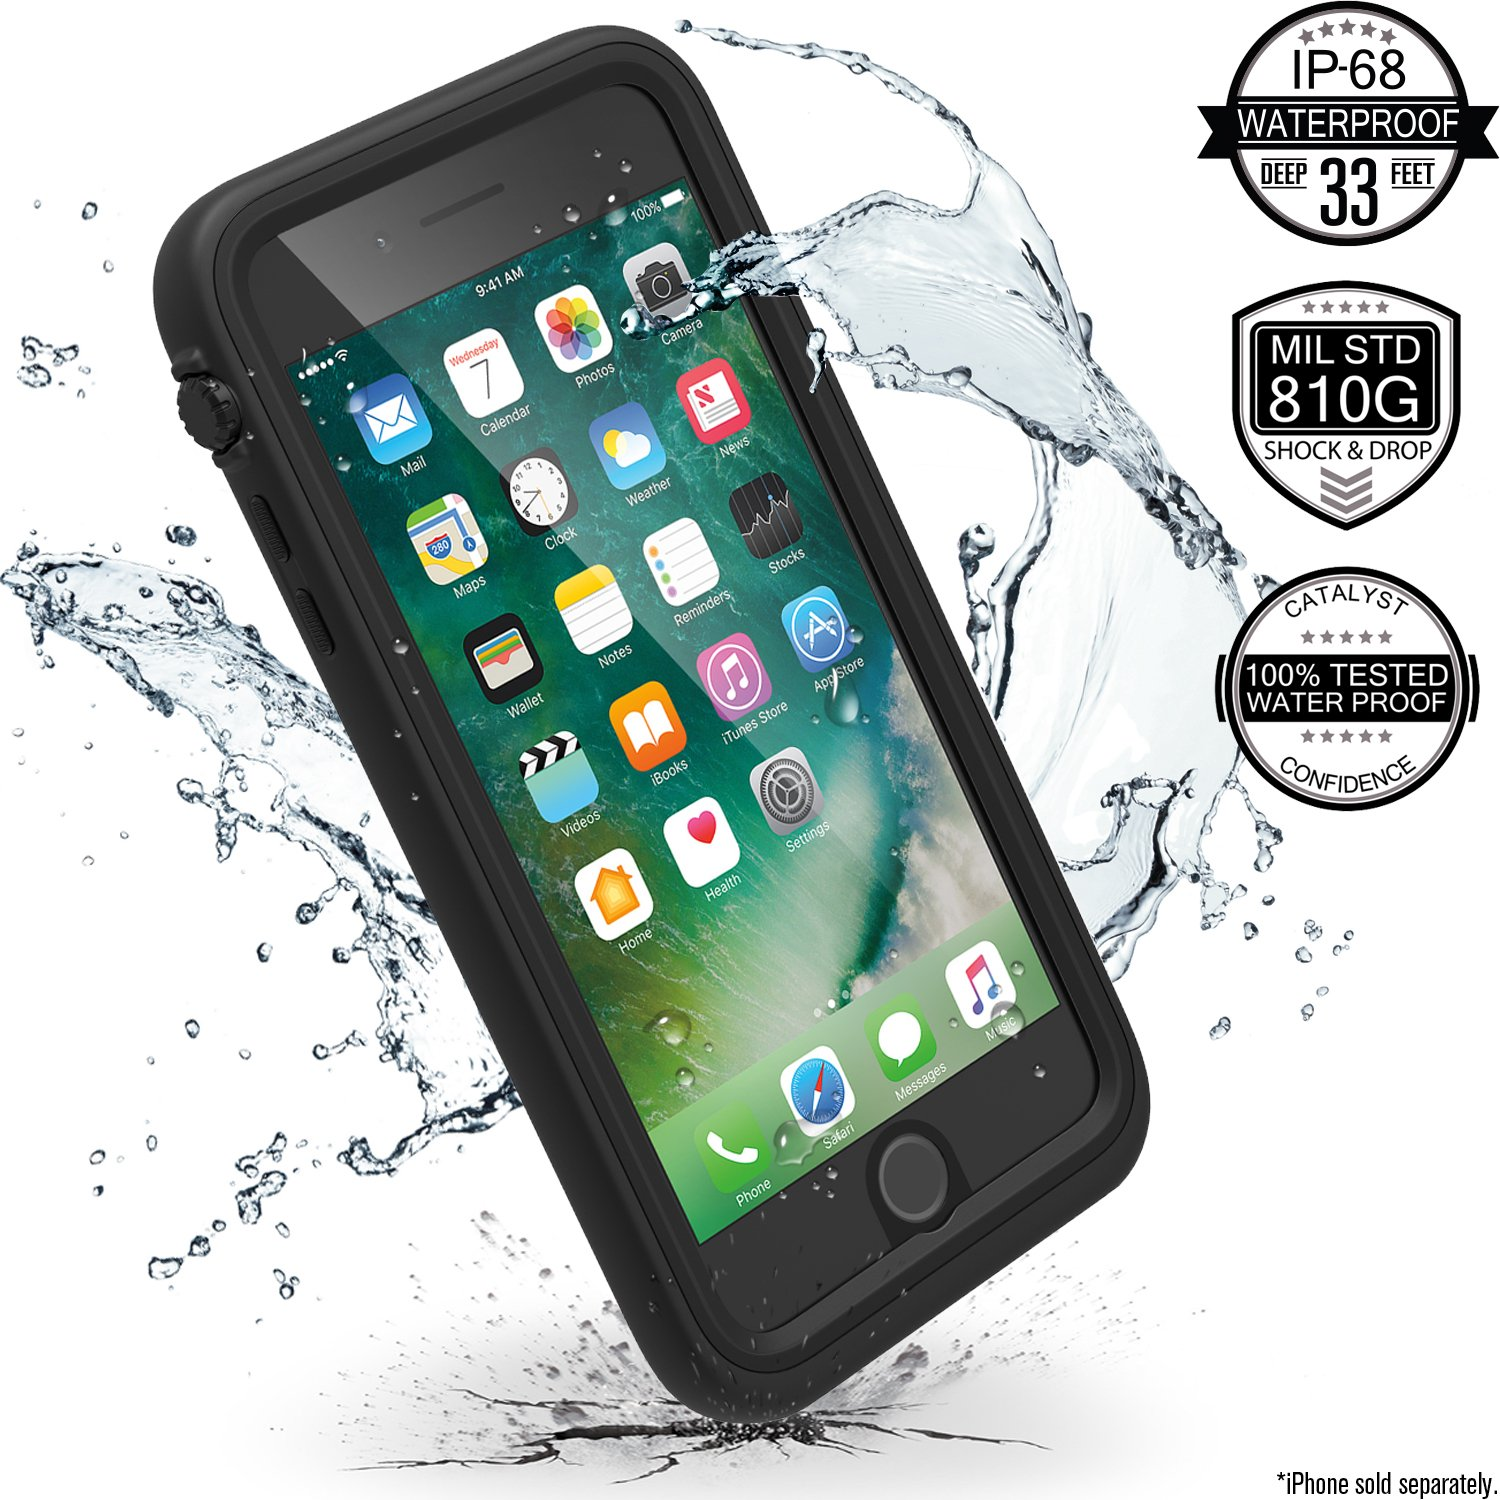 68c4ec172c5e28 Amazon.com: iPhone 7 Plus Waterproof Case, Shock Proof, Drop Proof by  Catalyst for Apple iPhone 7+ with High Touch Sensitivity ID (Stealth  Black): ...